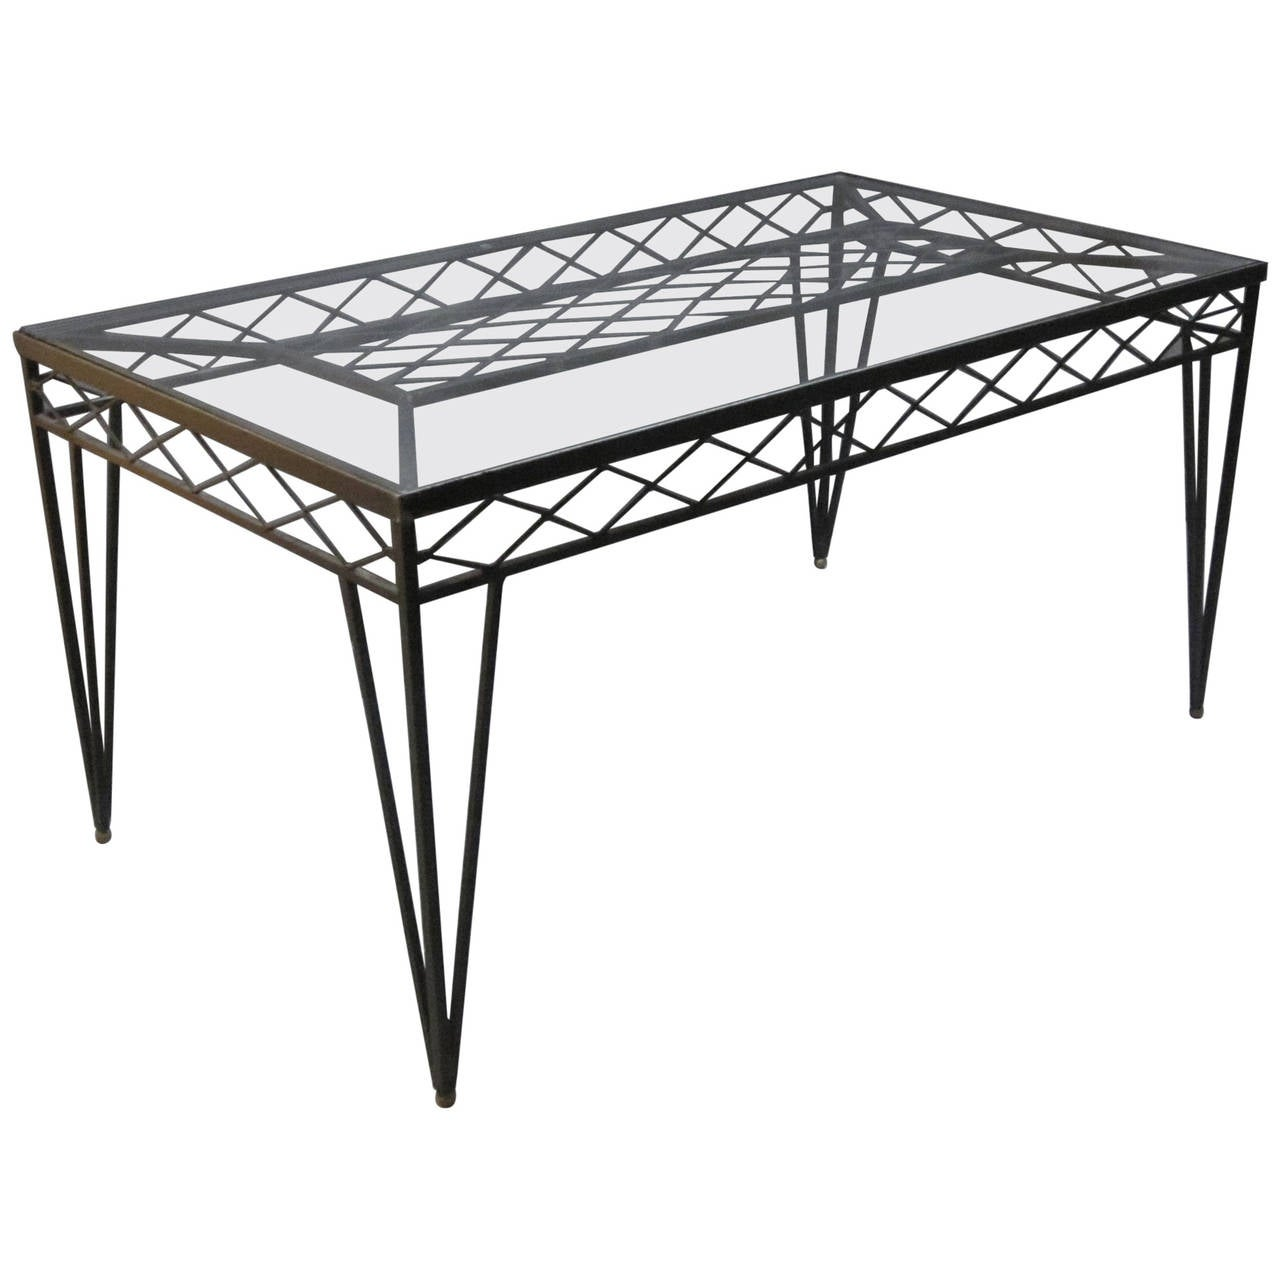 Circa 1940s Wrought Iron Rectangular Dining Table France  : 2798172l from www.1stdibs.com size 1280 x 1280 jpeg 93kB